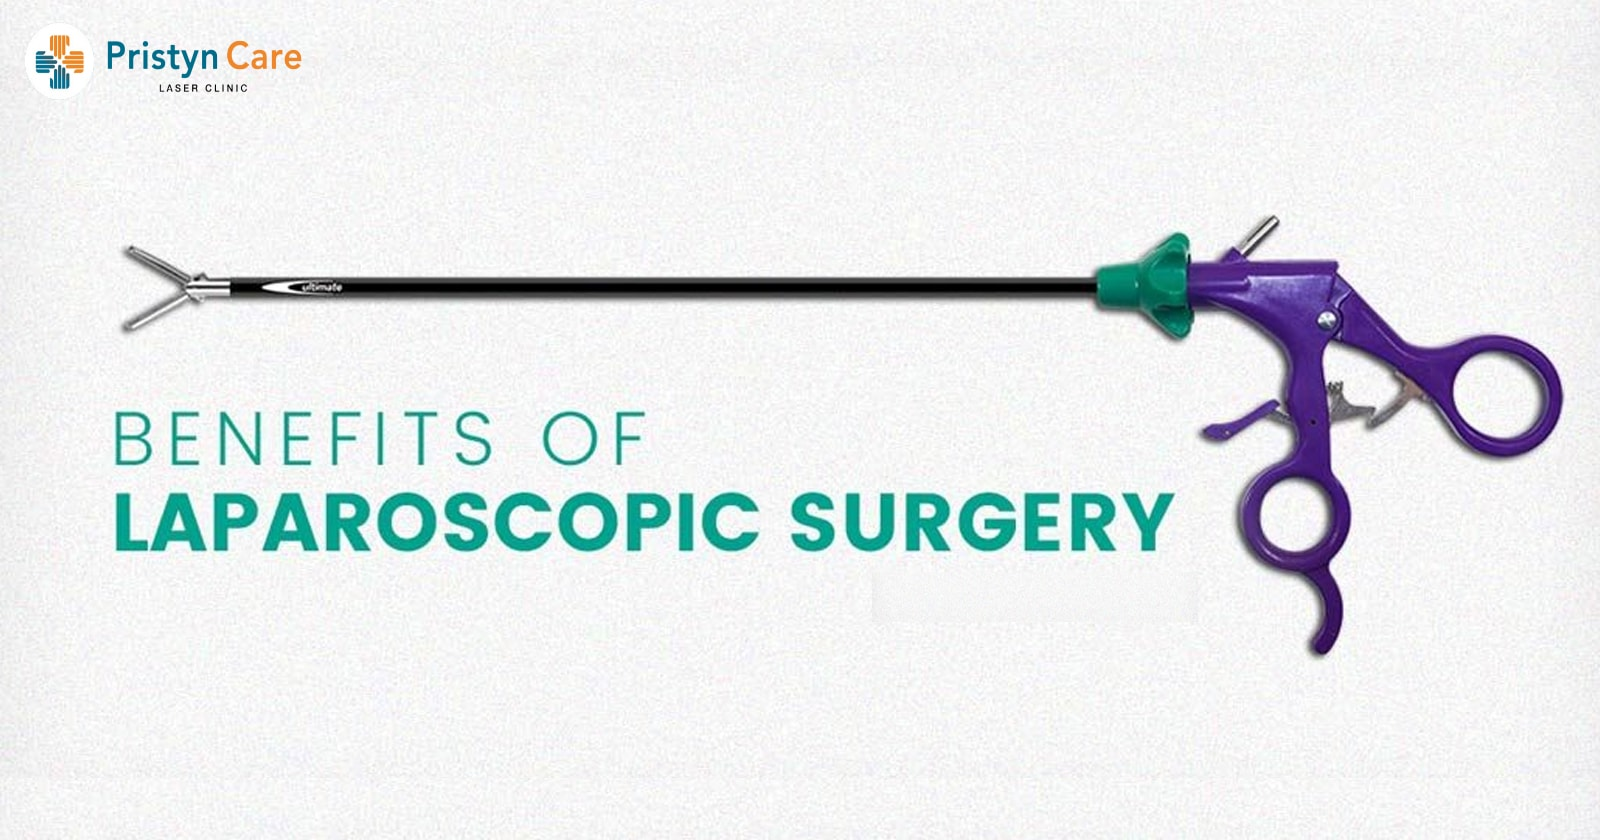 Benefits of Laparoscopic Surgery